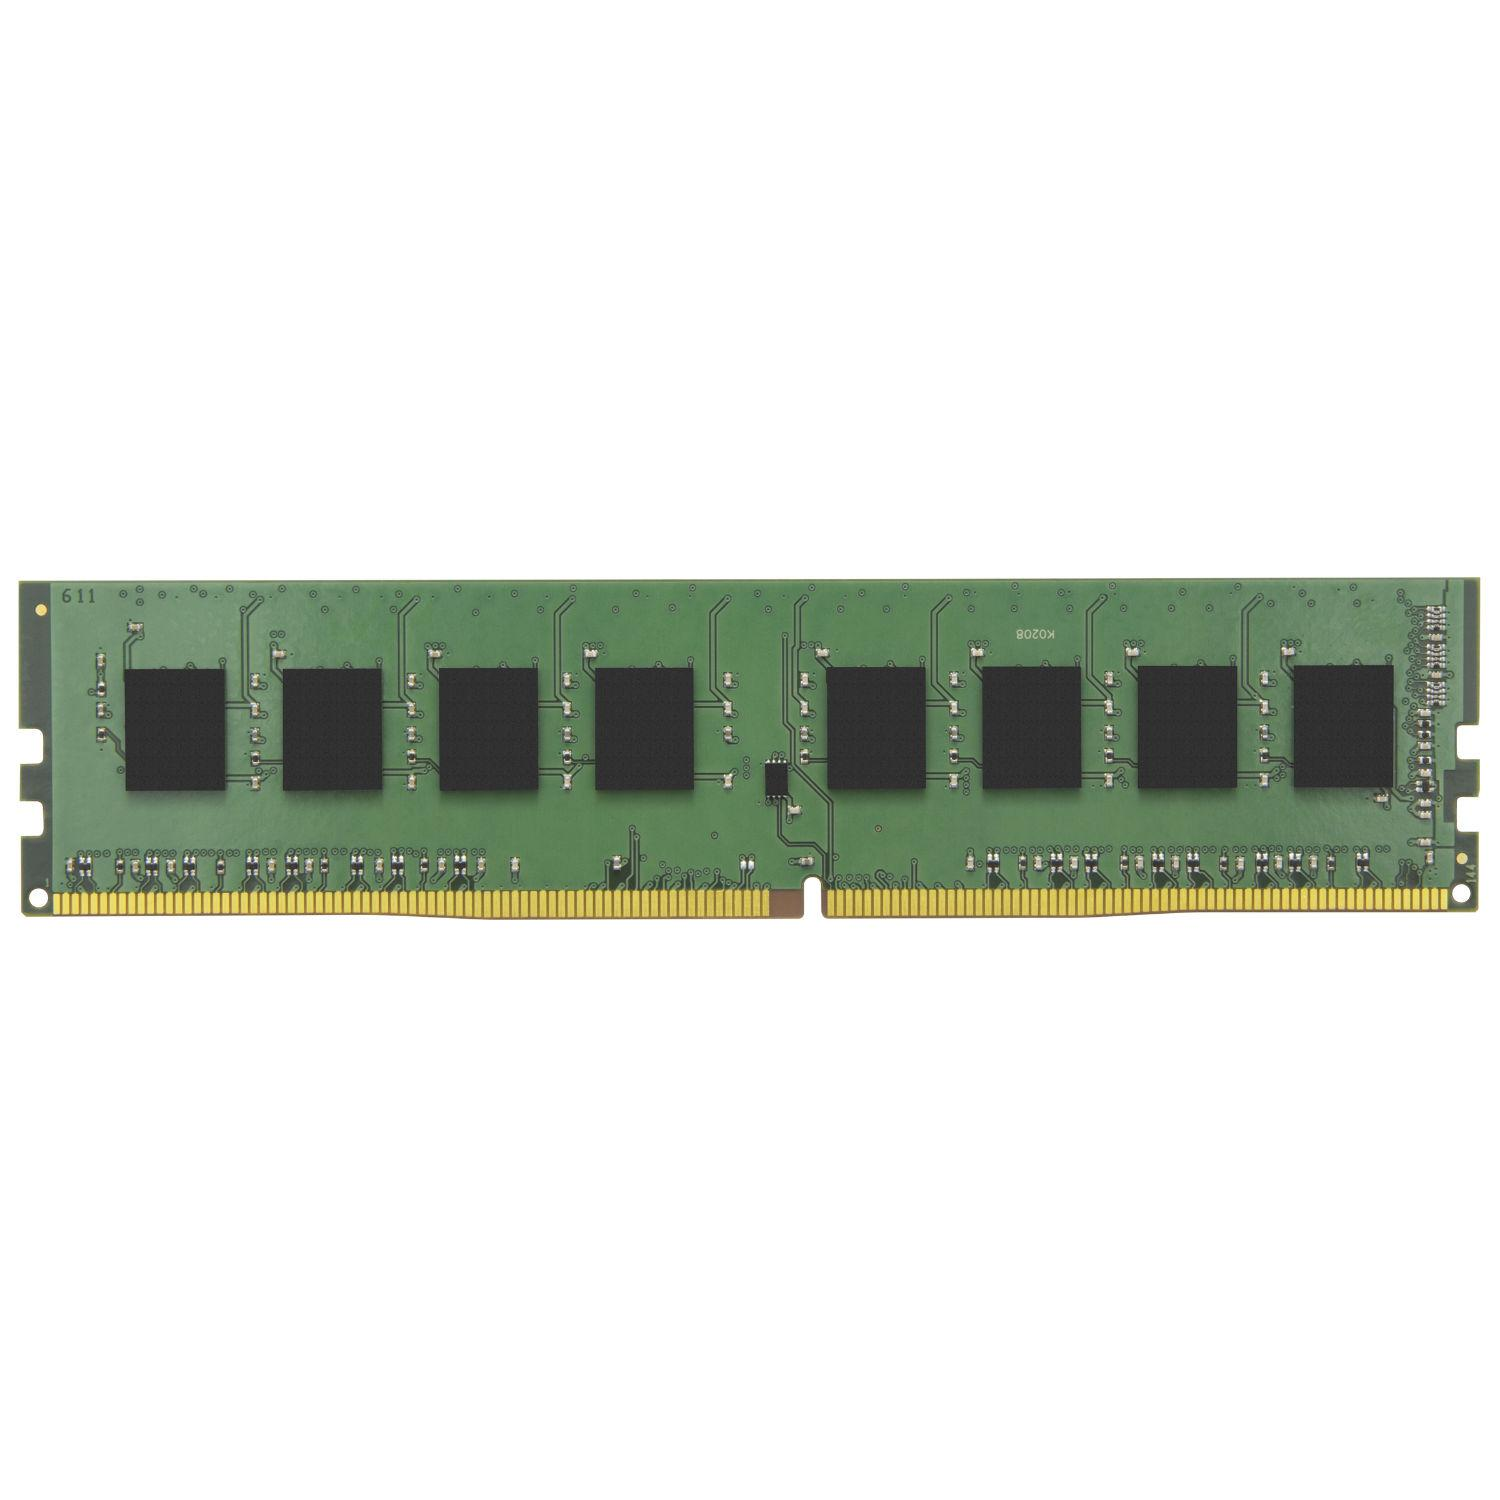 Памет Kingston 16GB DDR4 PC4-21300 2666MHz CL19 KVR26N19S8/16